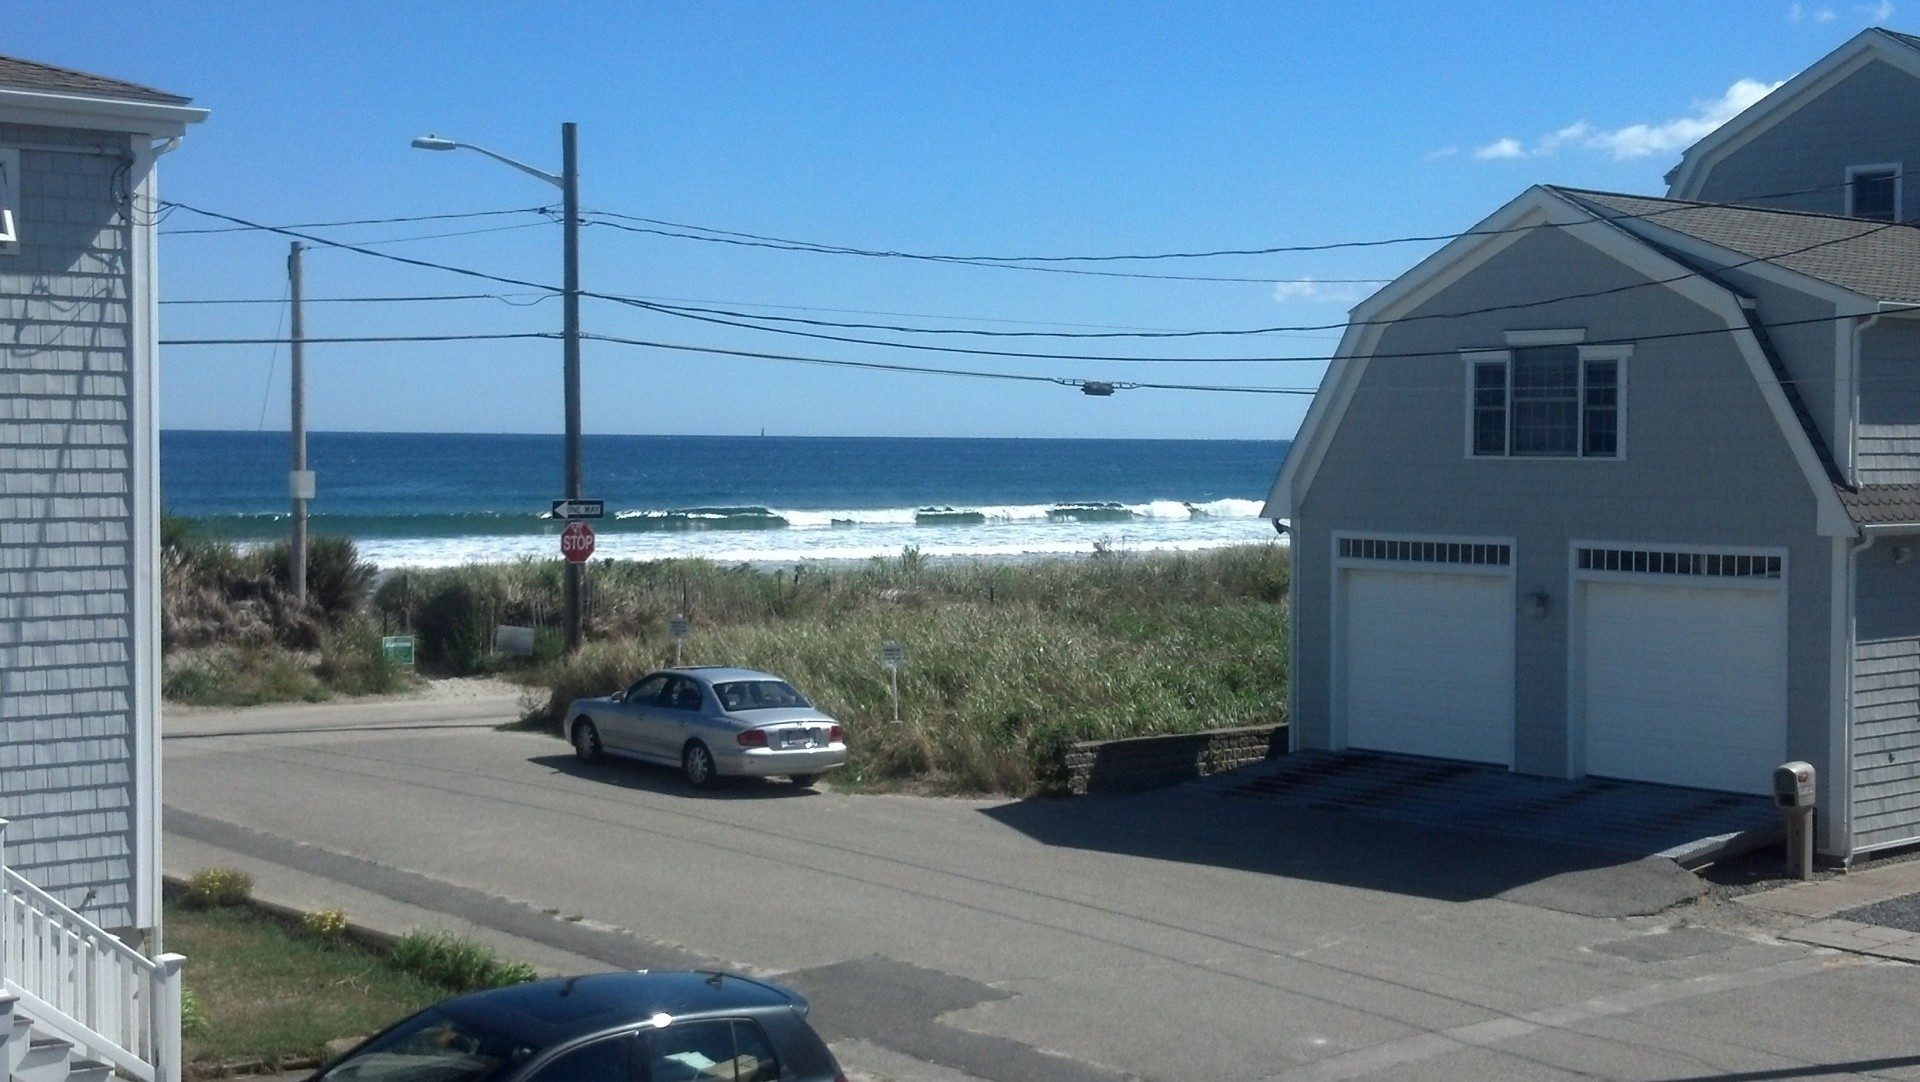 Yoshimasta's photo of Nantasket Beach